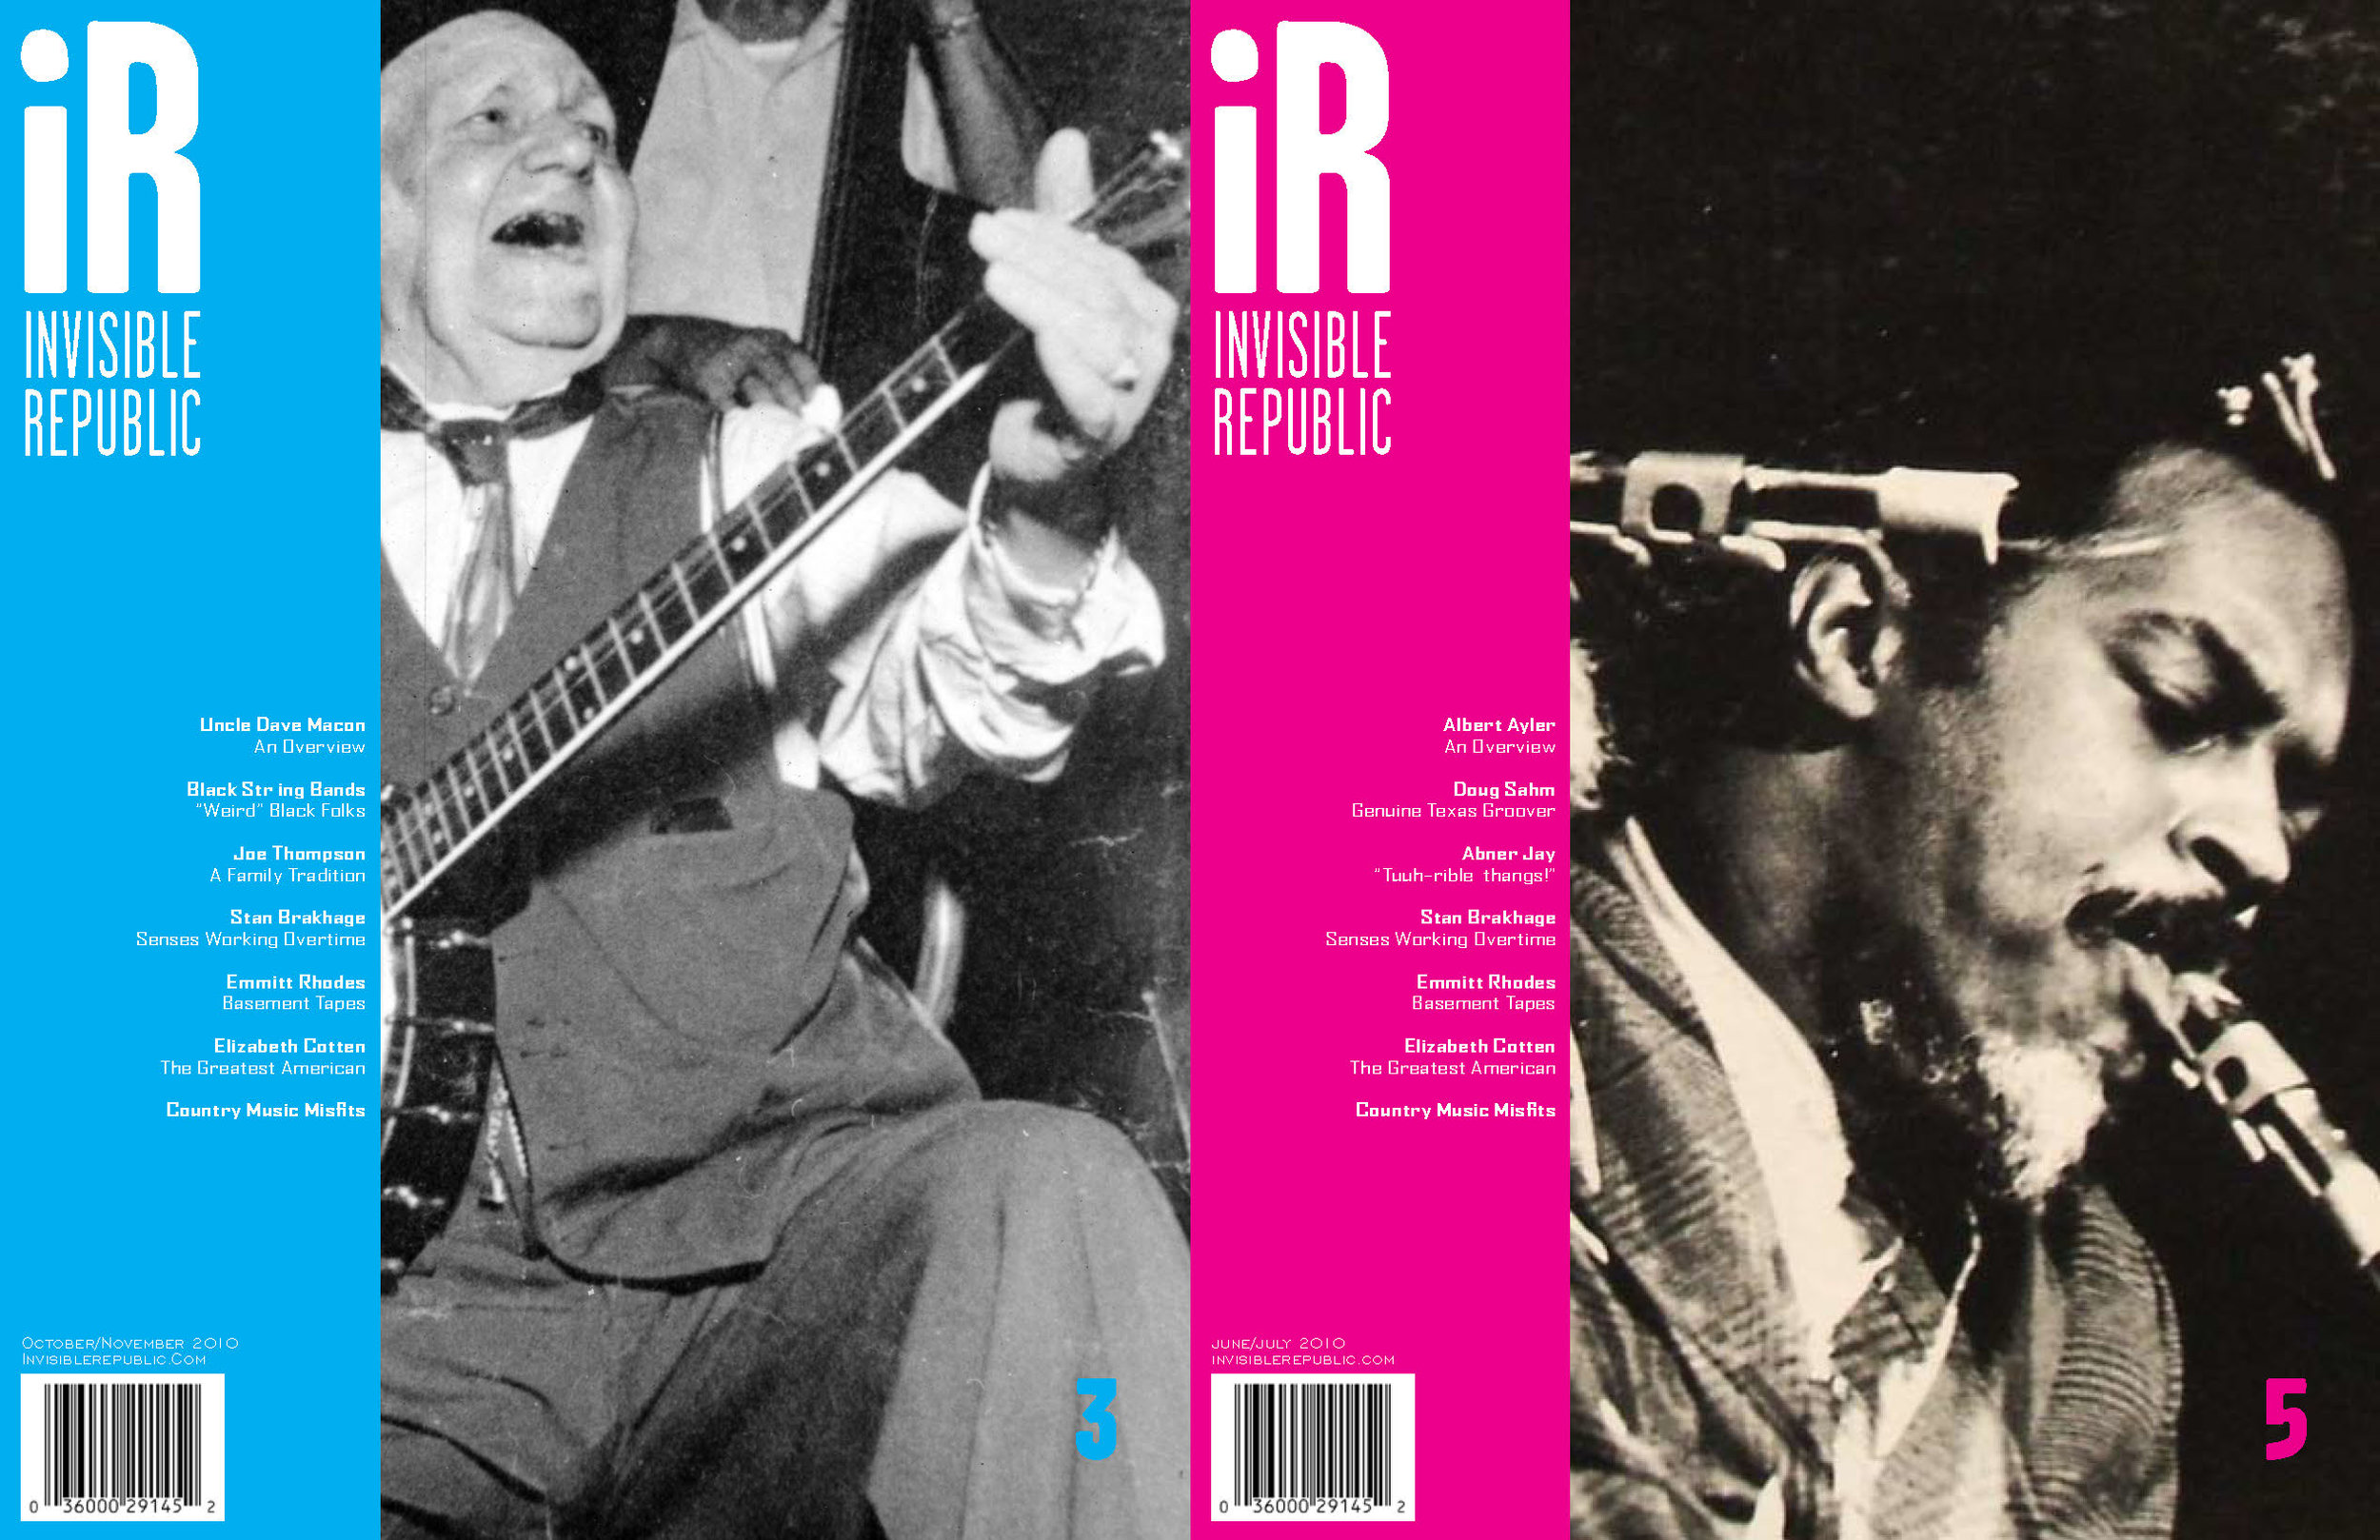 IR_COVERS_Page_2.jpg